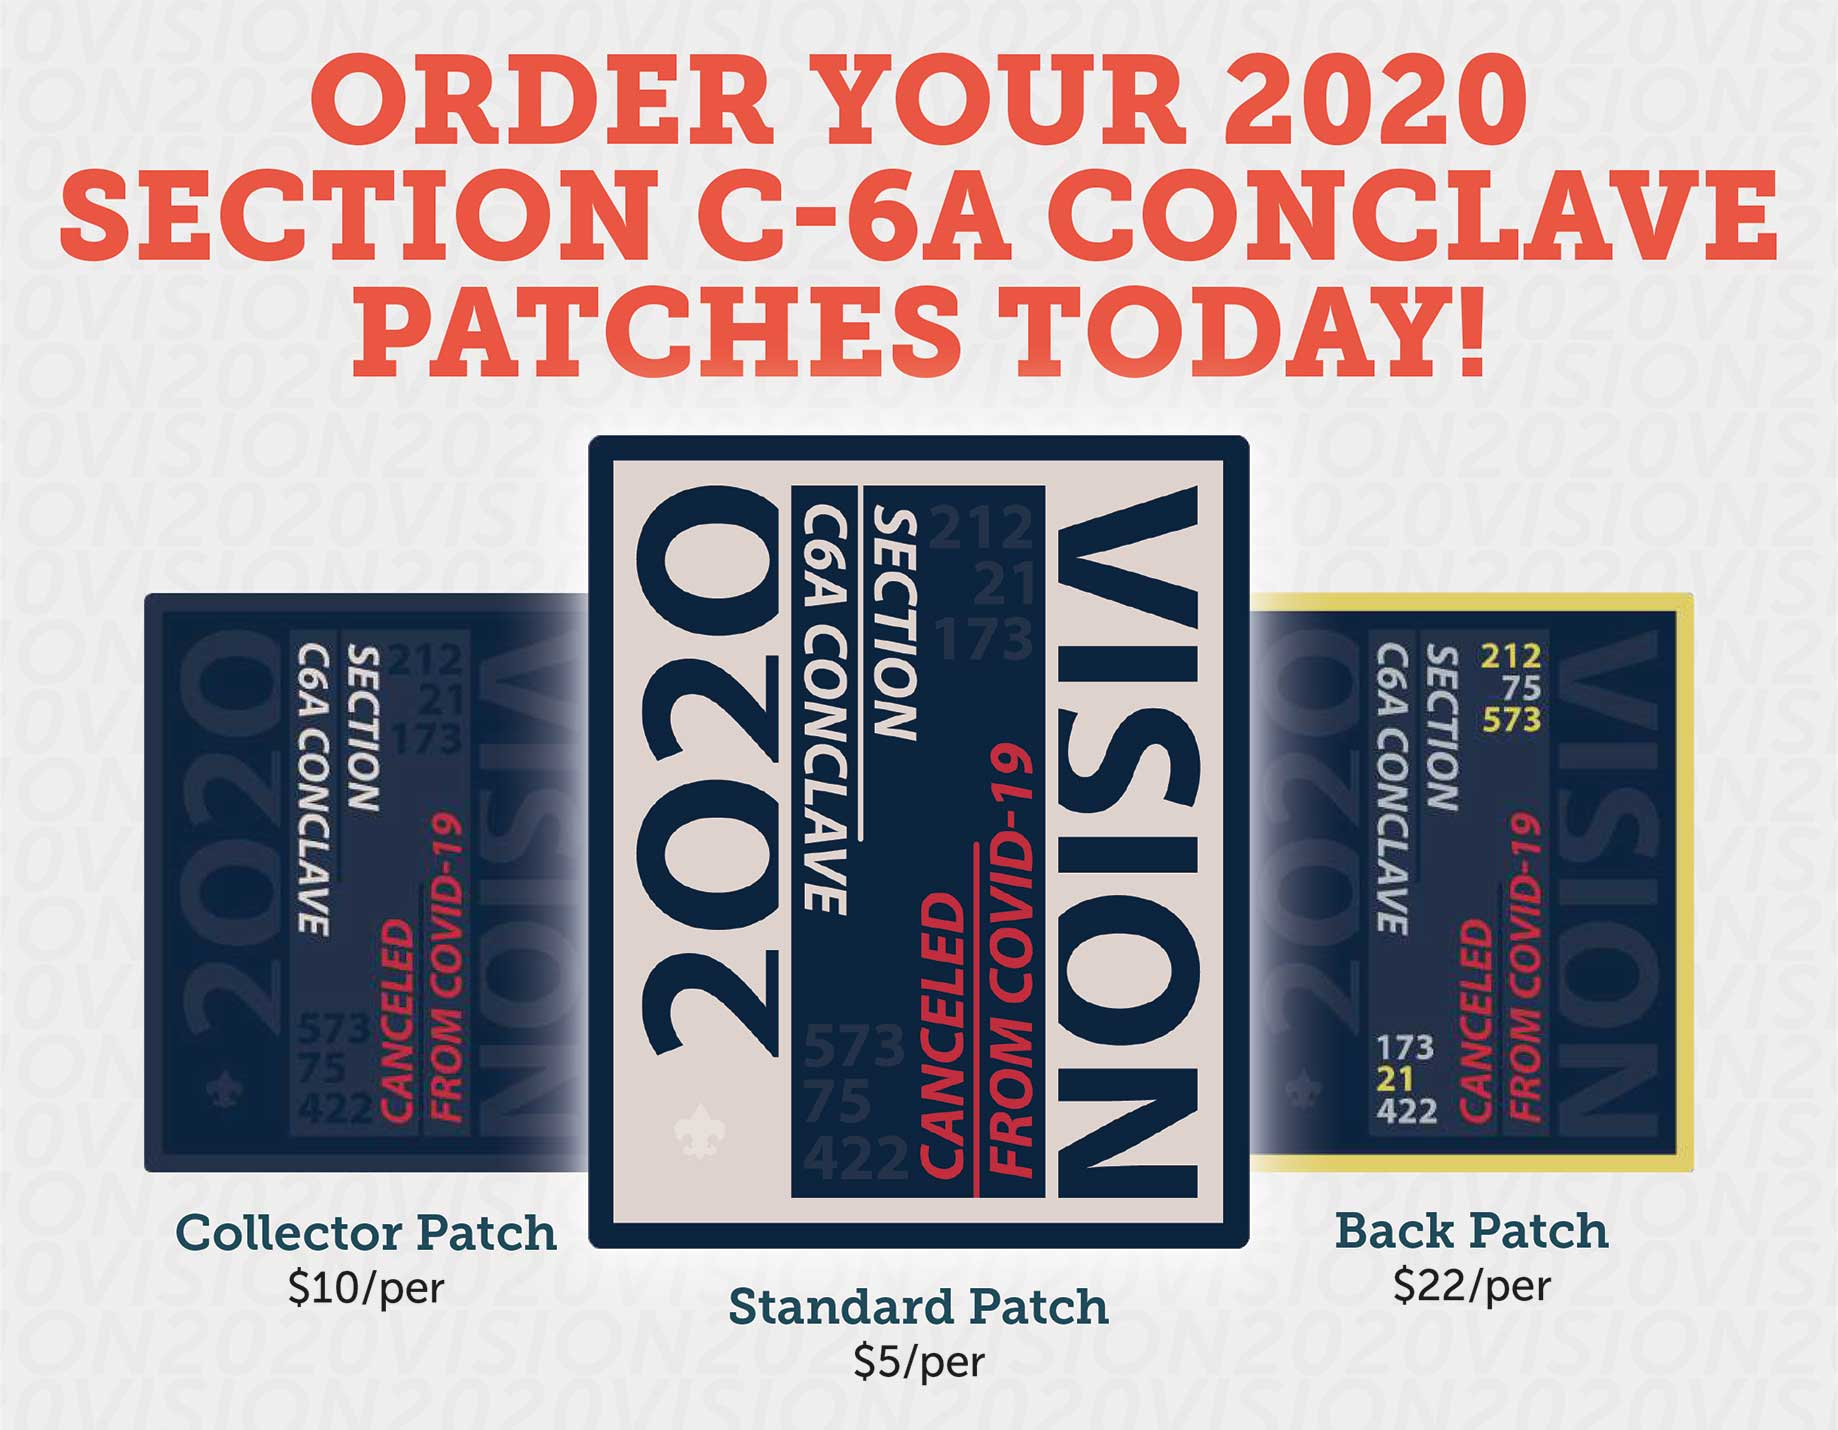 2020 Section C6A Conclave Patches